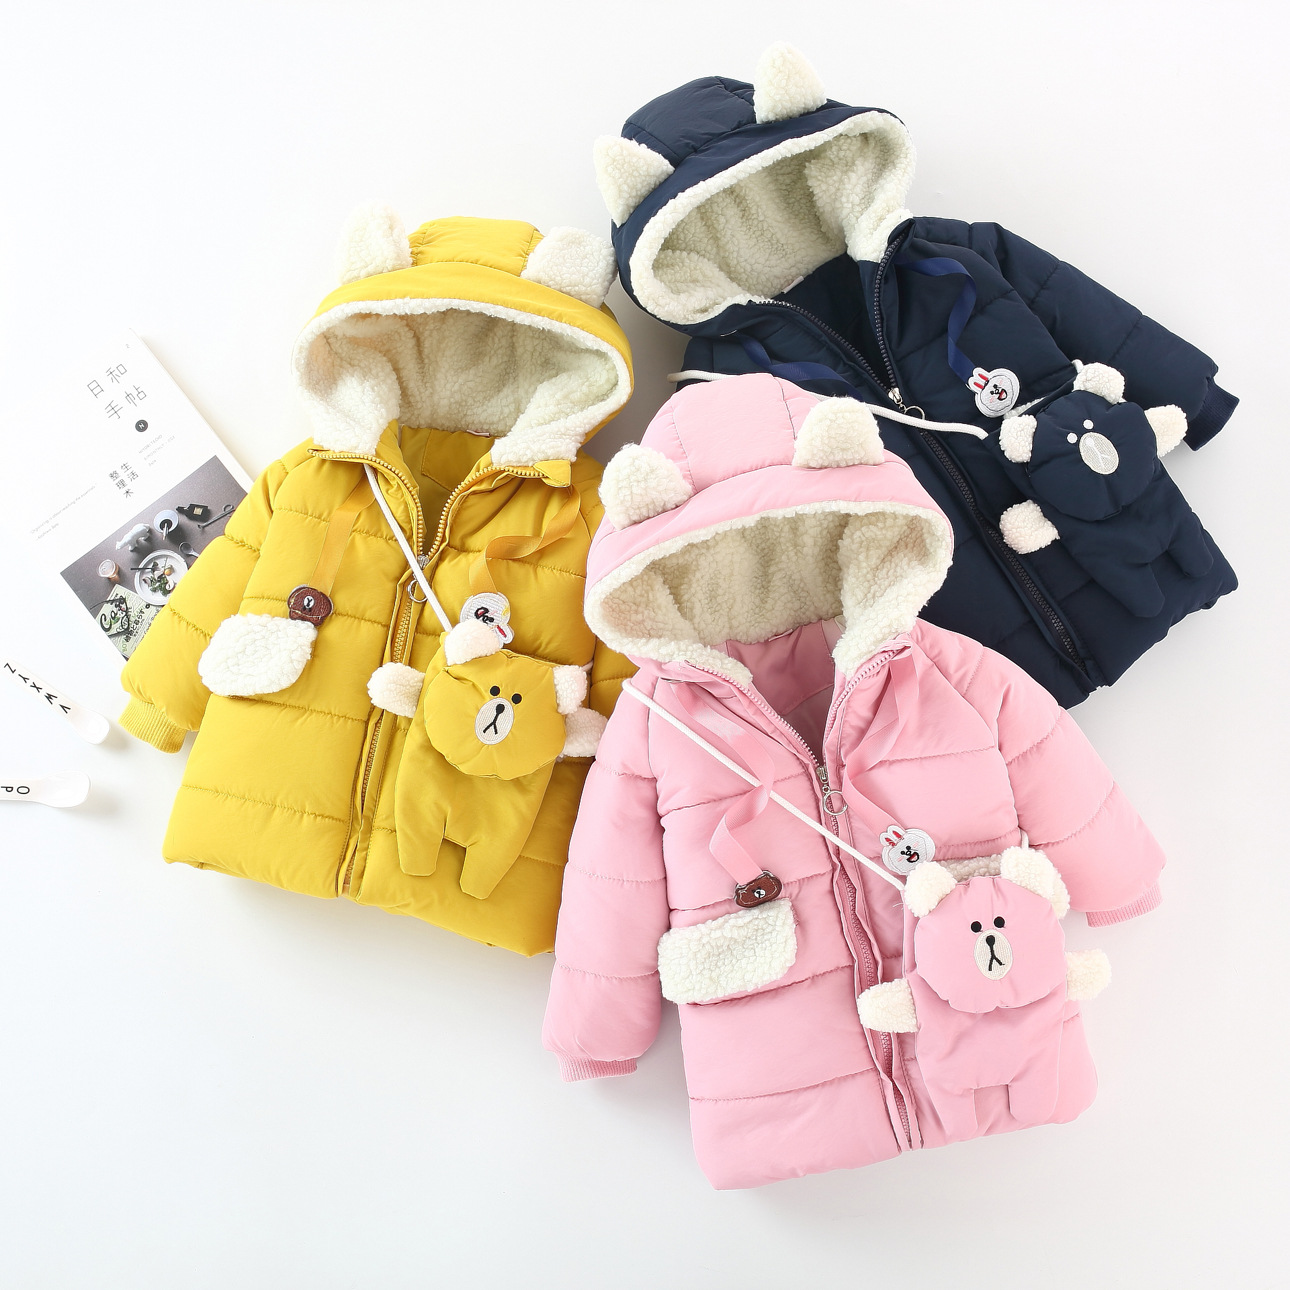 Girls Coat Autumn Winter Coat Long Sleeve Section of The New Cotton Padded Jacket For Girls Yellow 1-4 Years with Bag Fashion браслеты